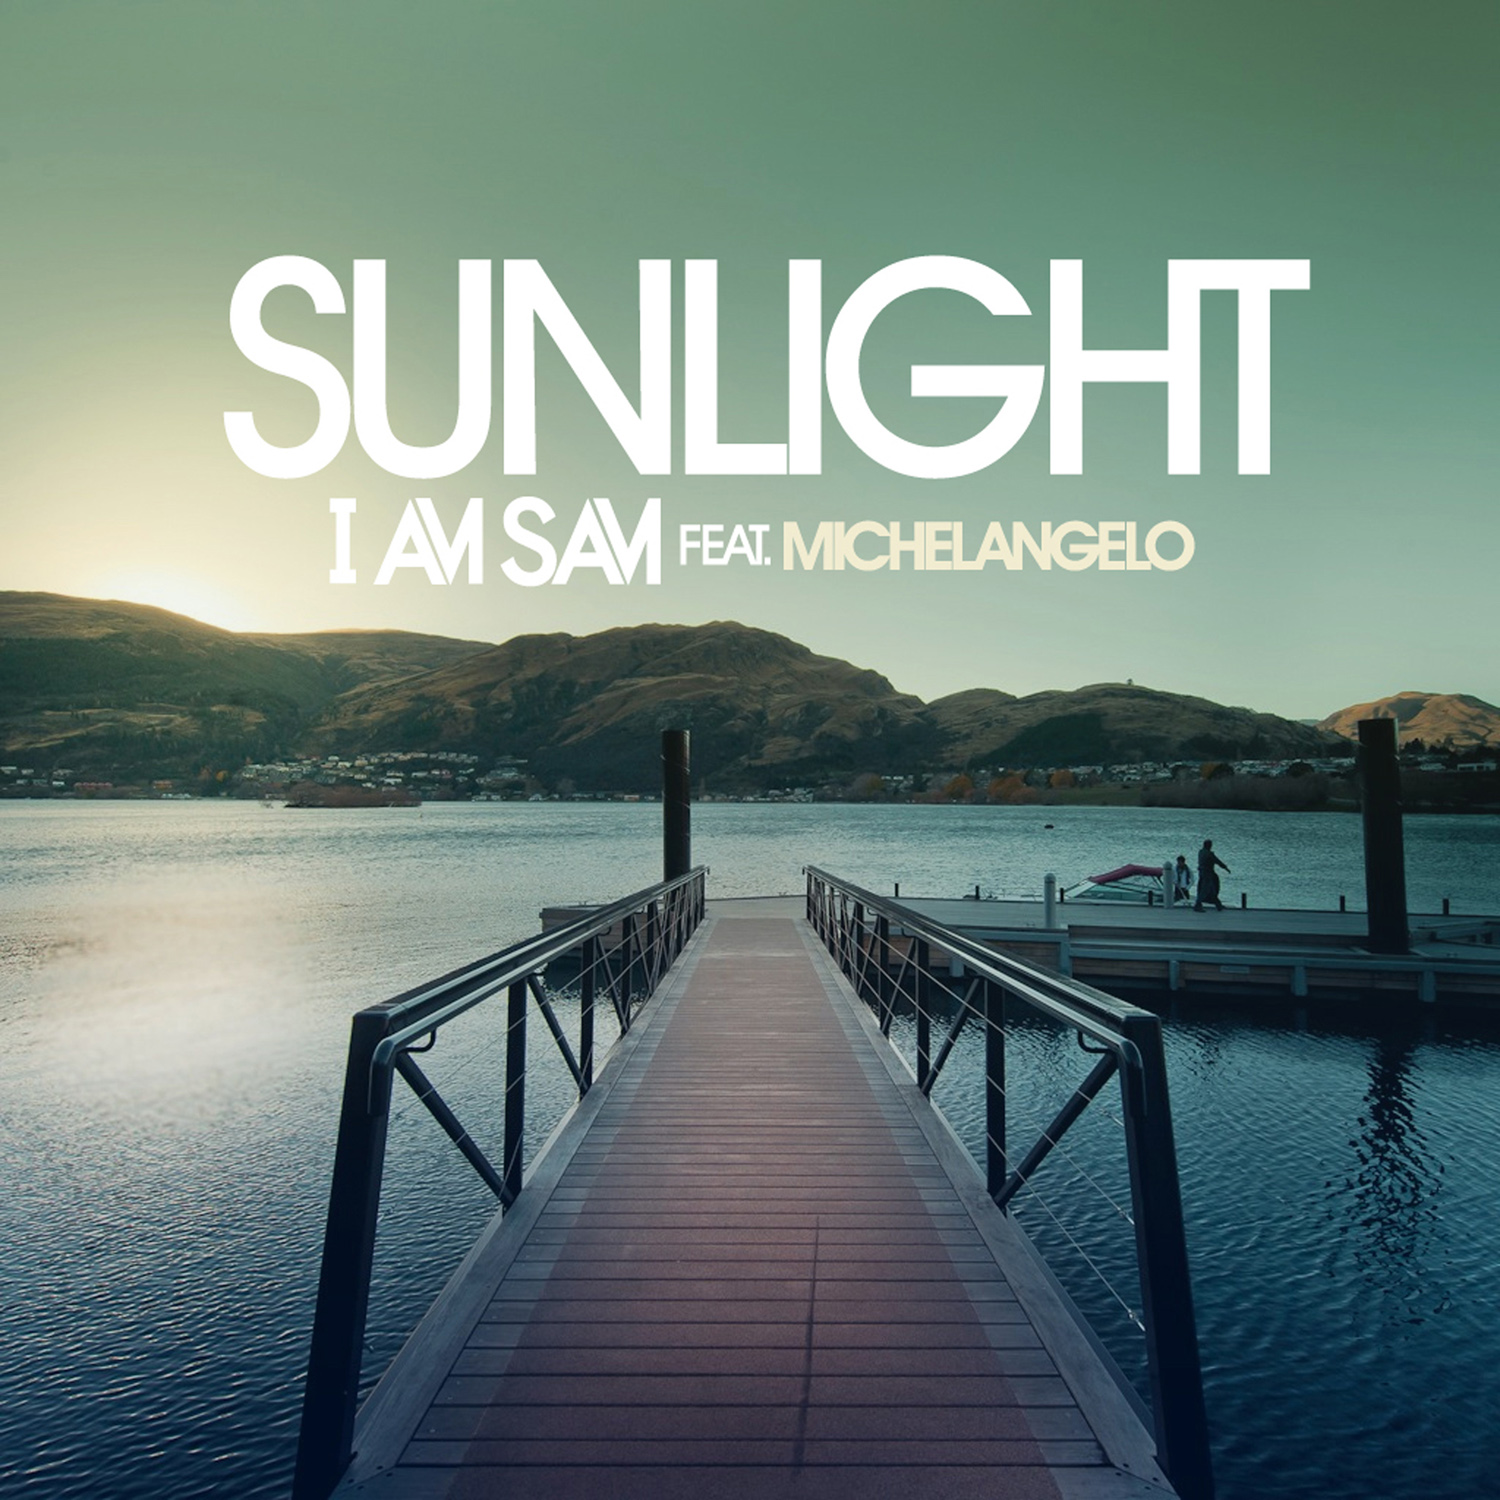 I Am Sam feat. Michelangelo – Sunlight